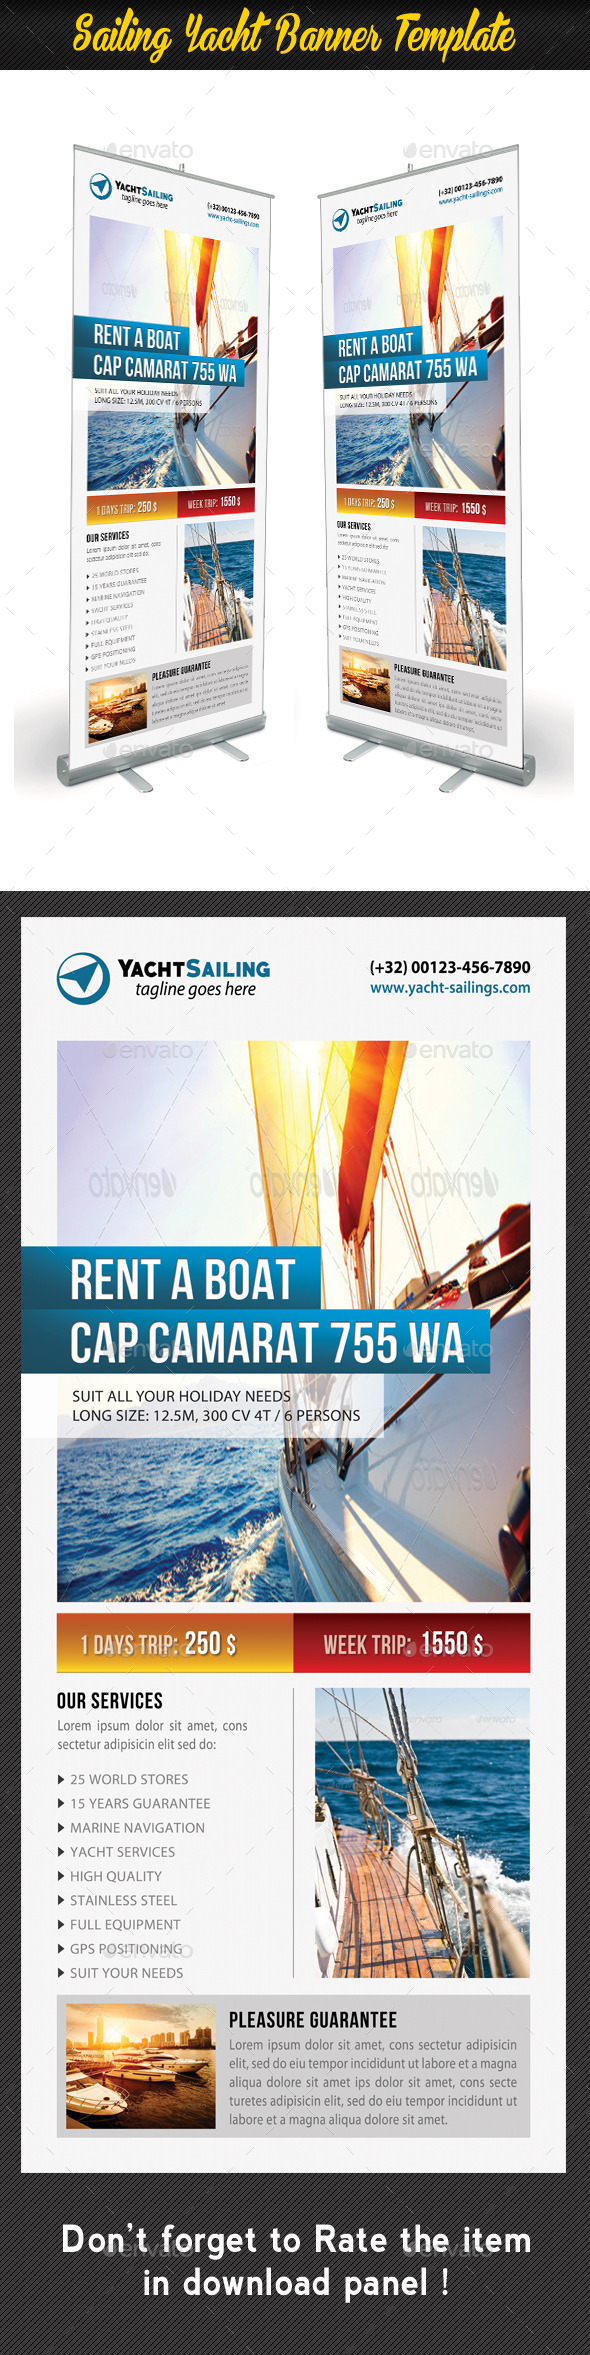 GraphicRiver Sailing Yacht Banner Template 04 11128376